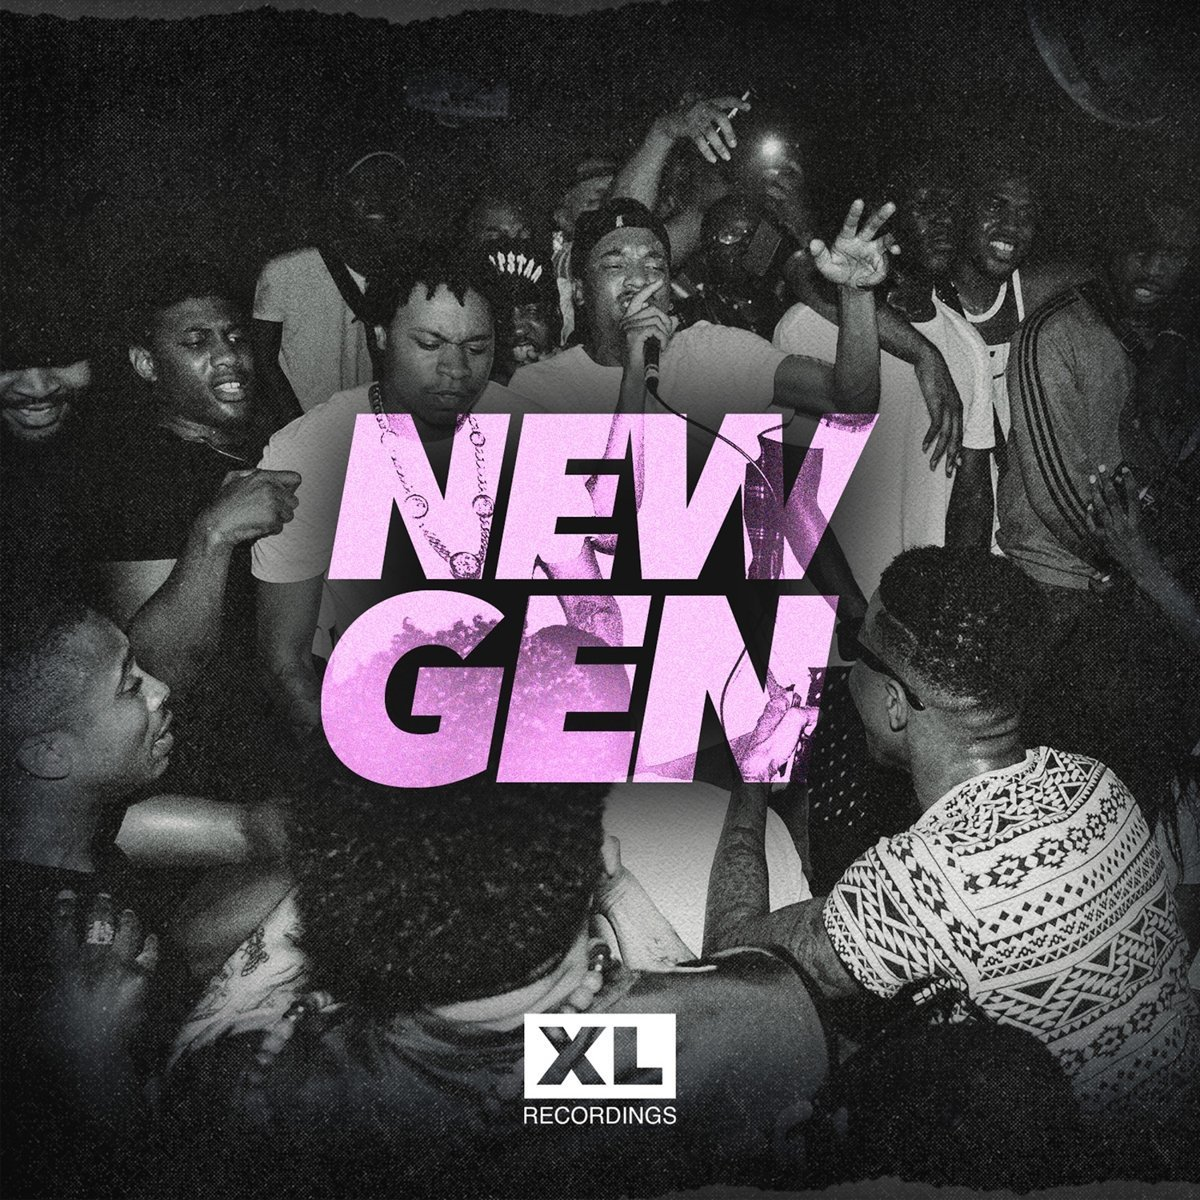 Vinilo : New Gen - New Gen [explicit Content] (2PC)